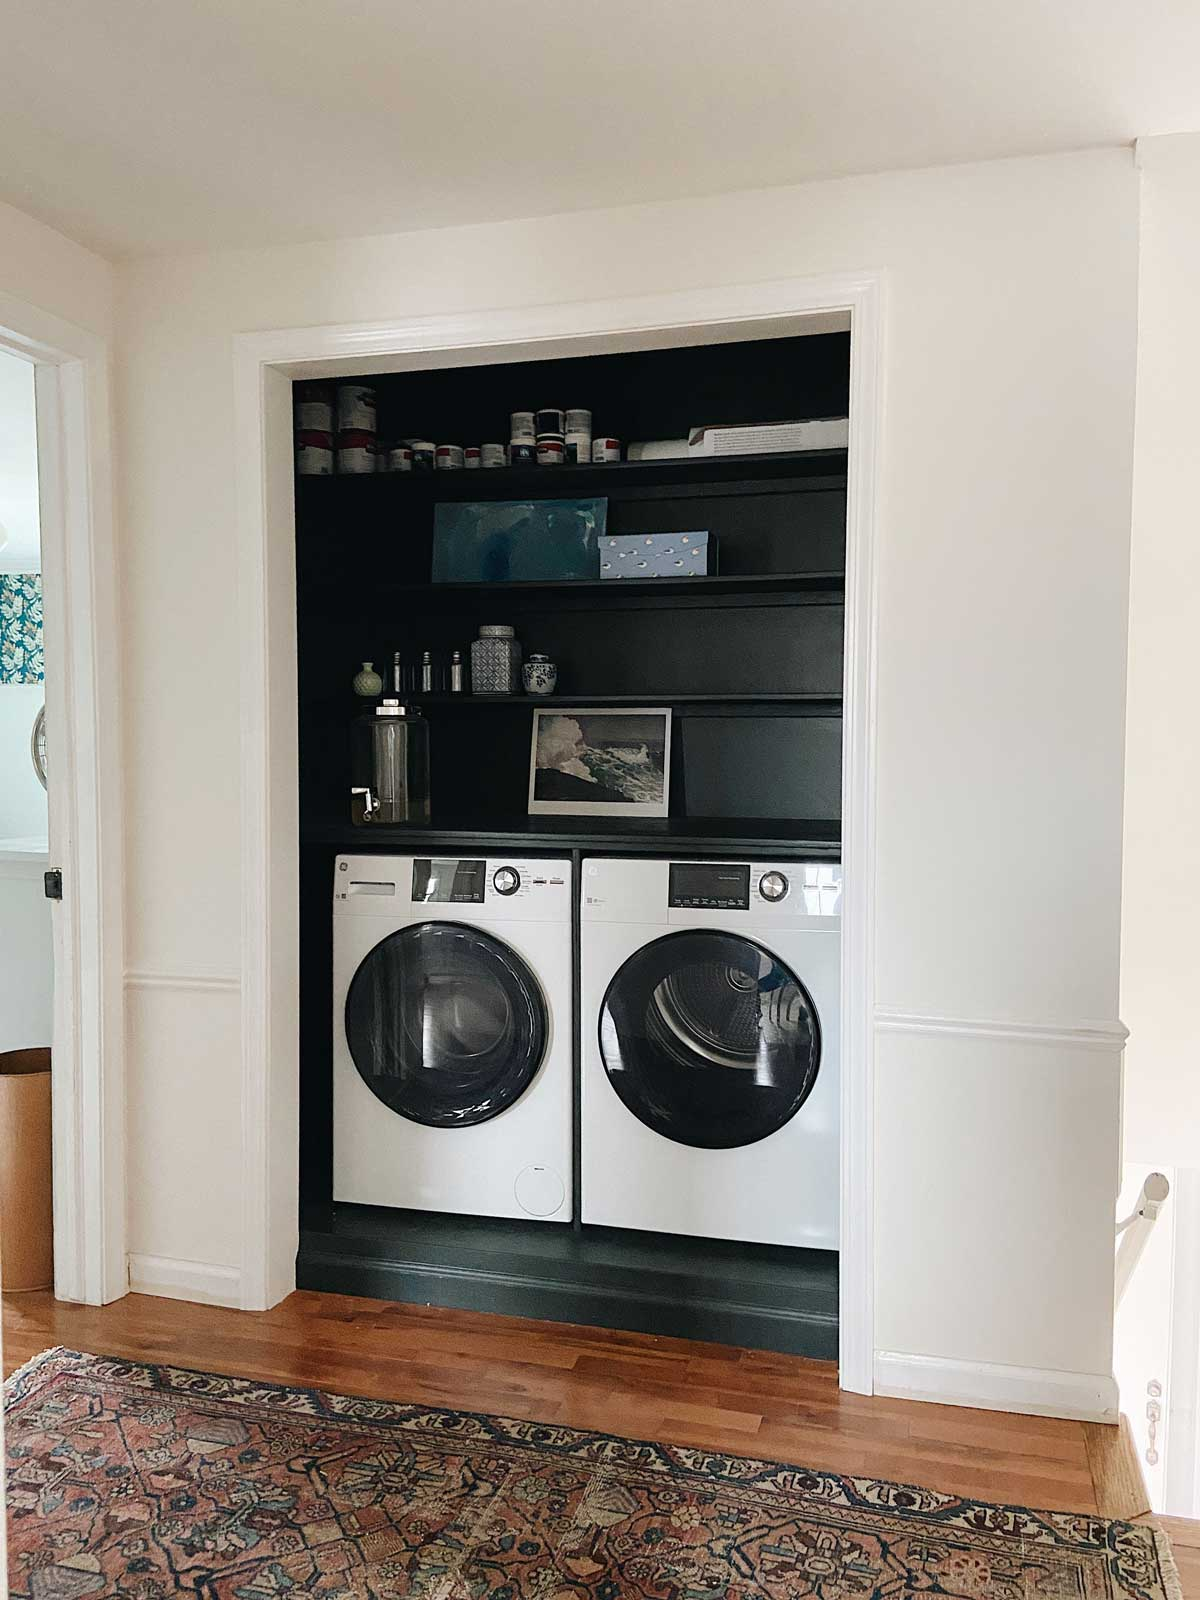 CREATING A SECOND FLOOR LAUNDRY CLOSET